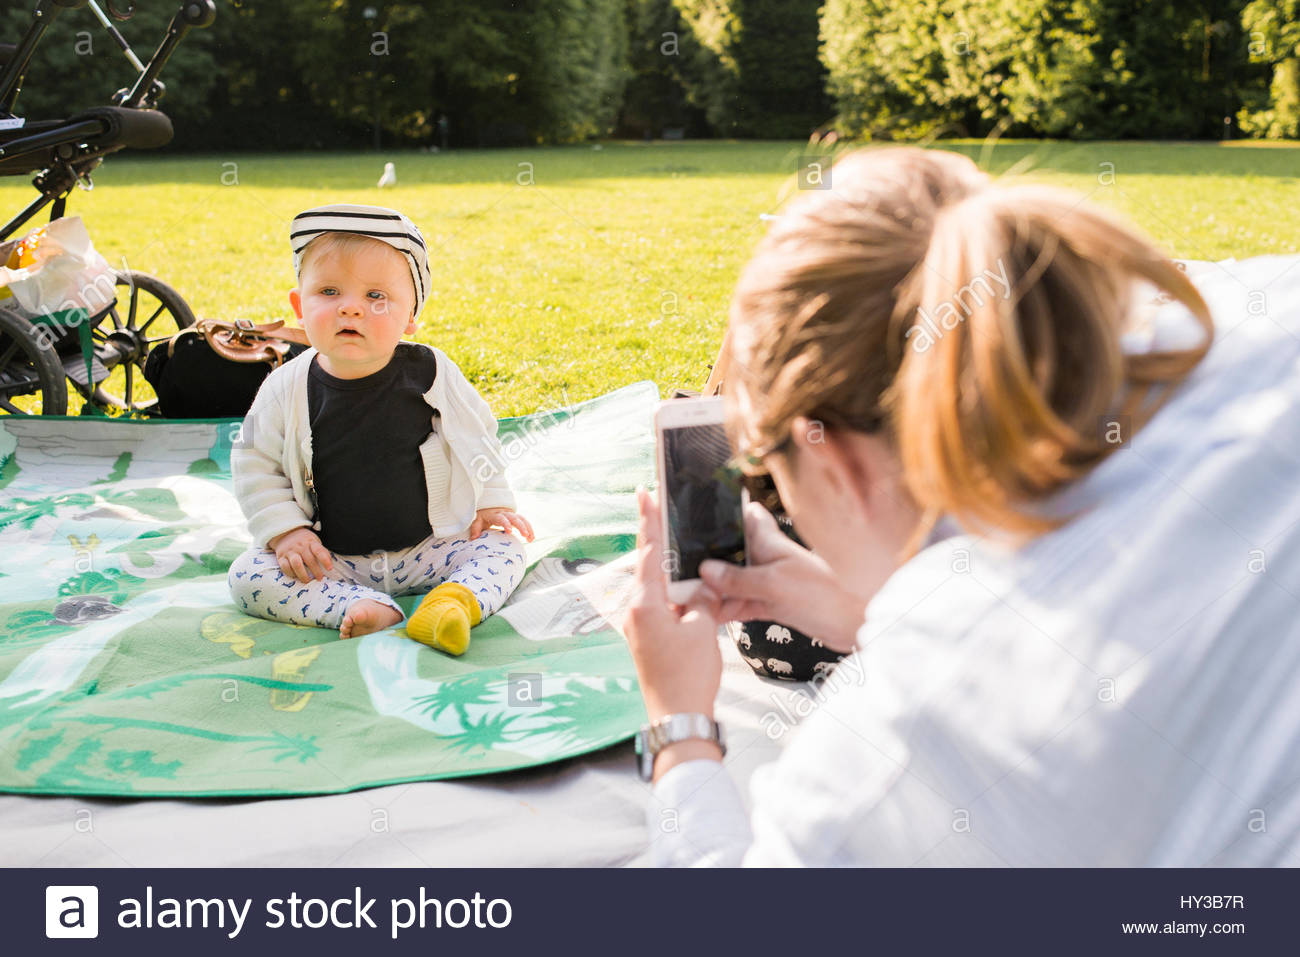 Sweden, Skane, Malmo, Mother photographing son (18-23 months) in park - Stock Image